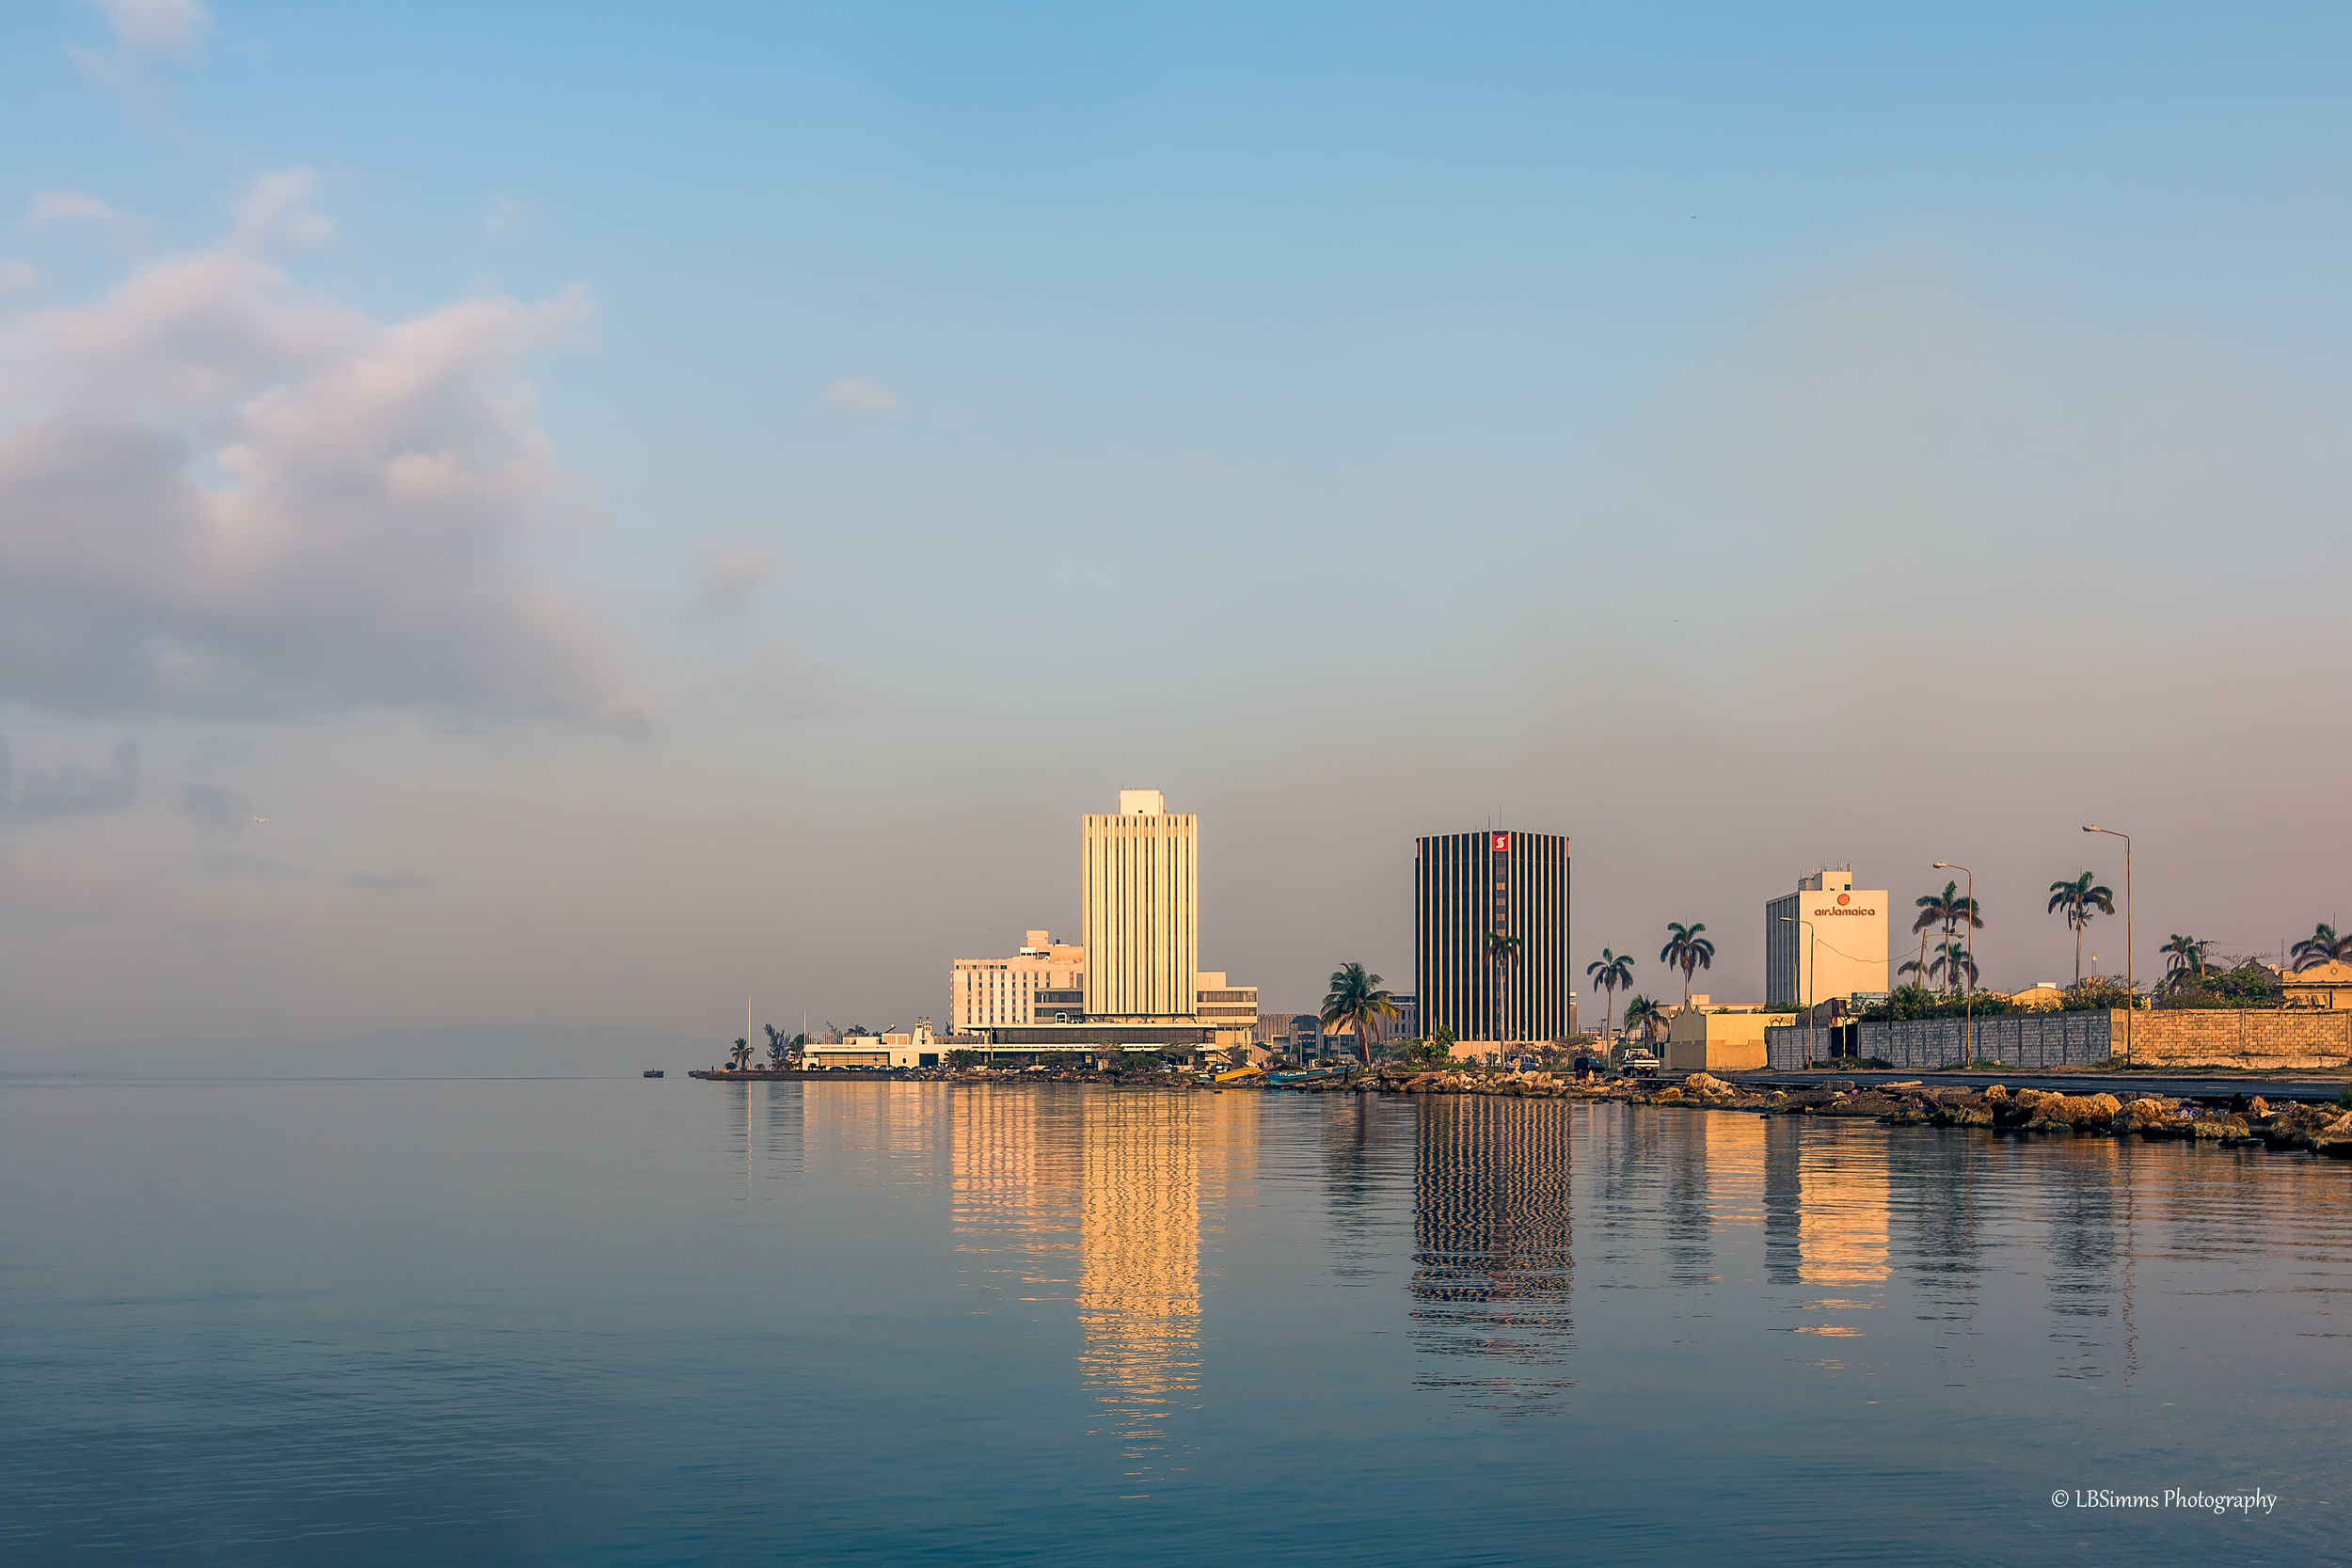 Reflections on the Kingston Harbour in Kingston, Jamaica.